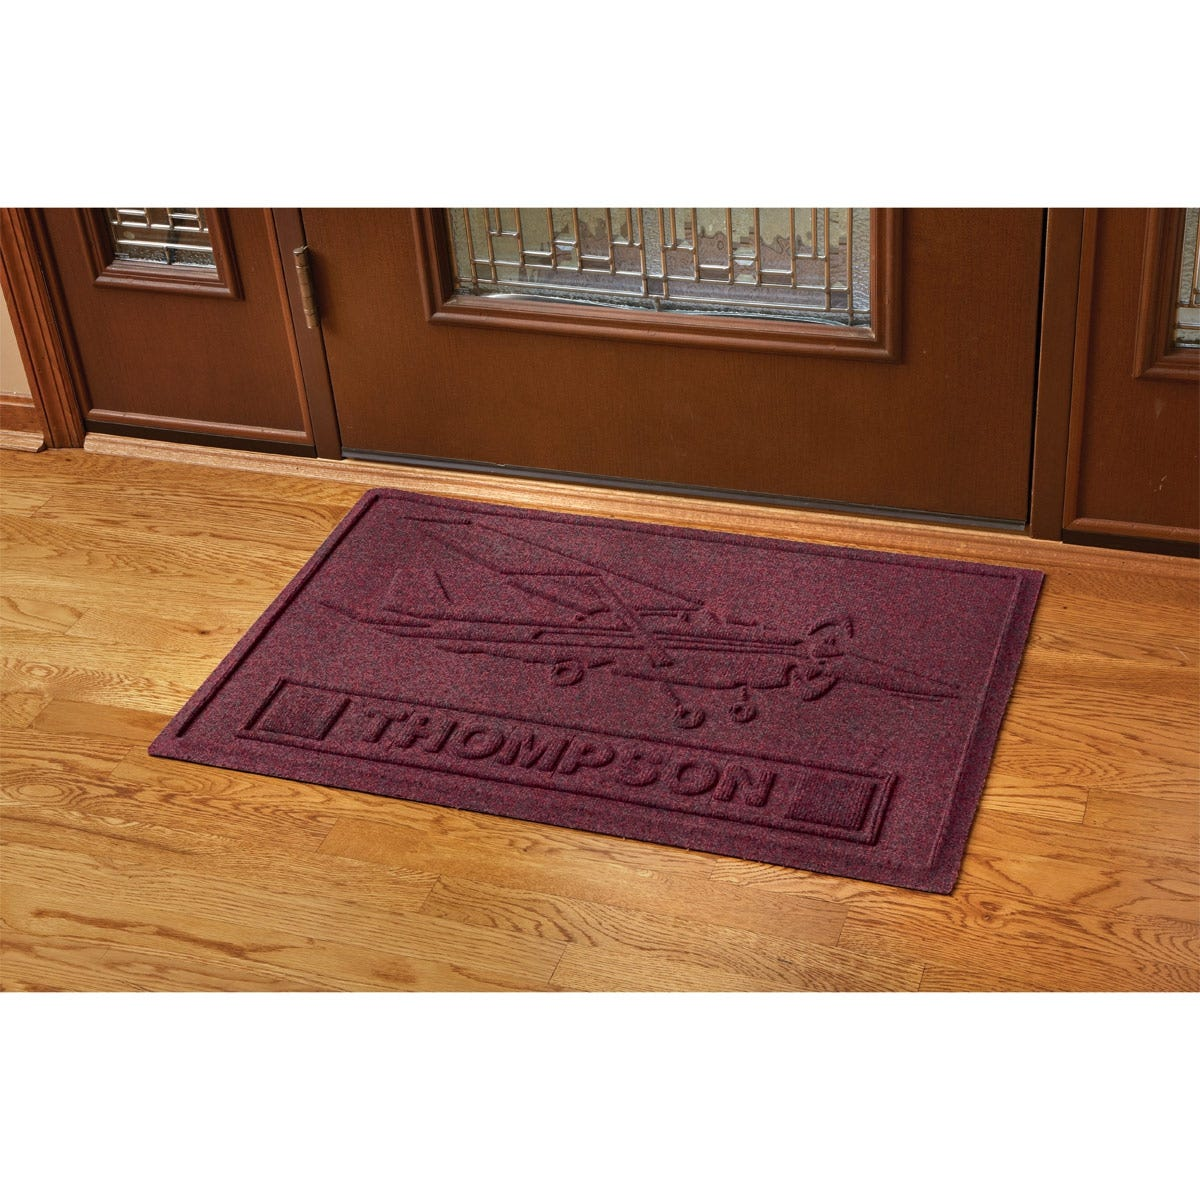 cessna 172 personalized doormat from sporty 39 s wright bros collection. Black Bedroom Furniture Sets. Home Design Ideas